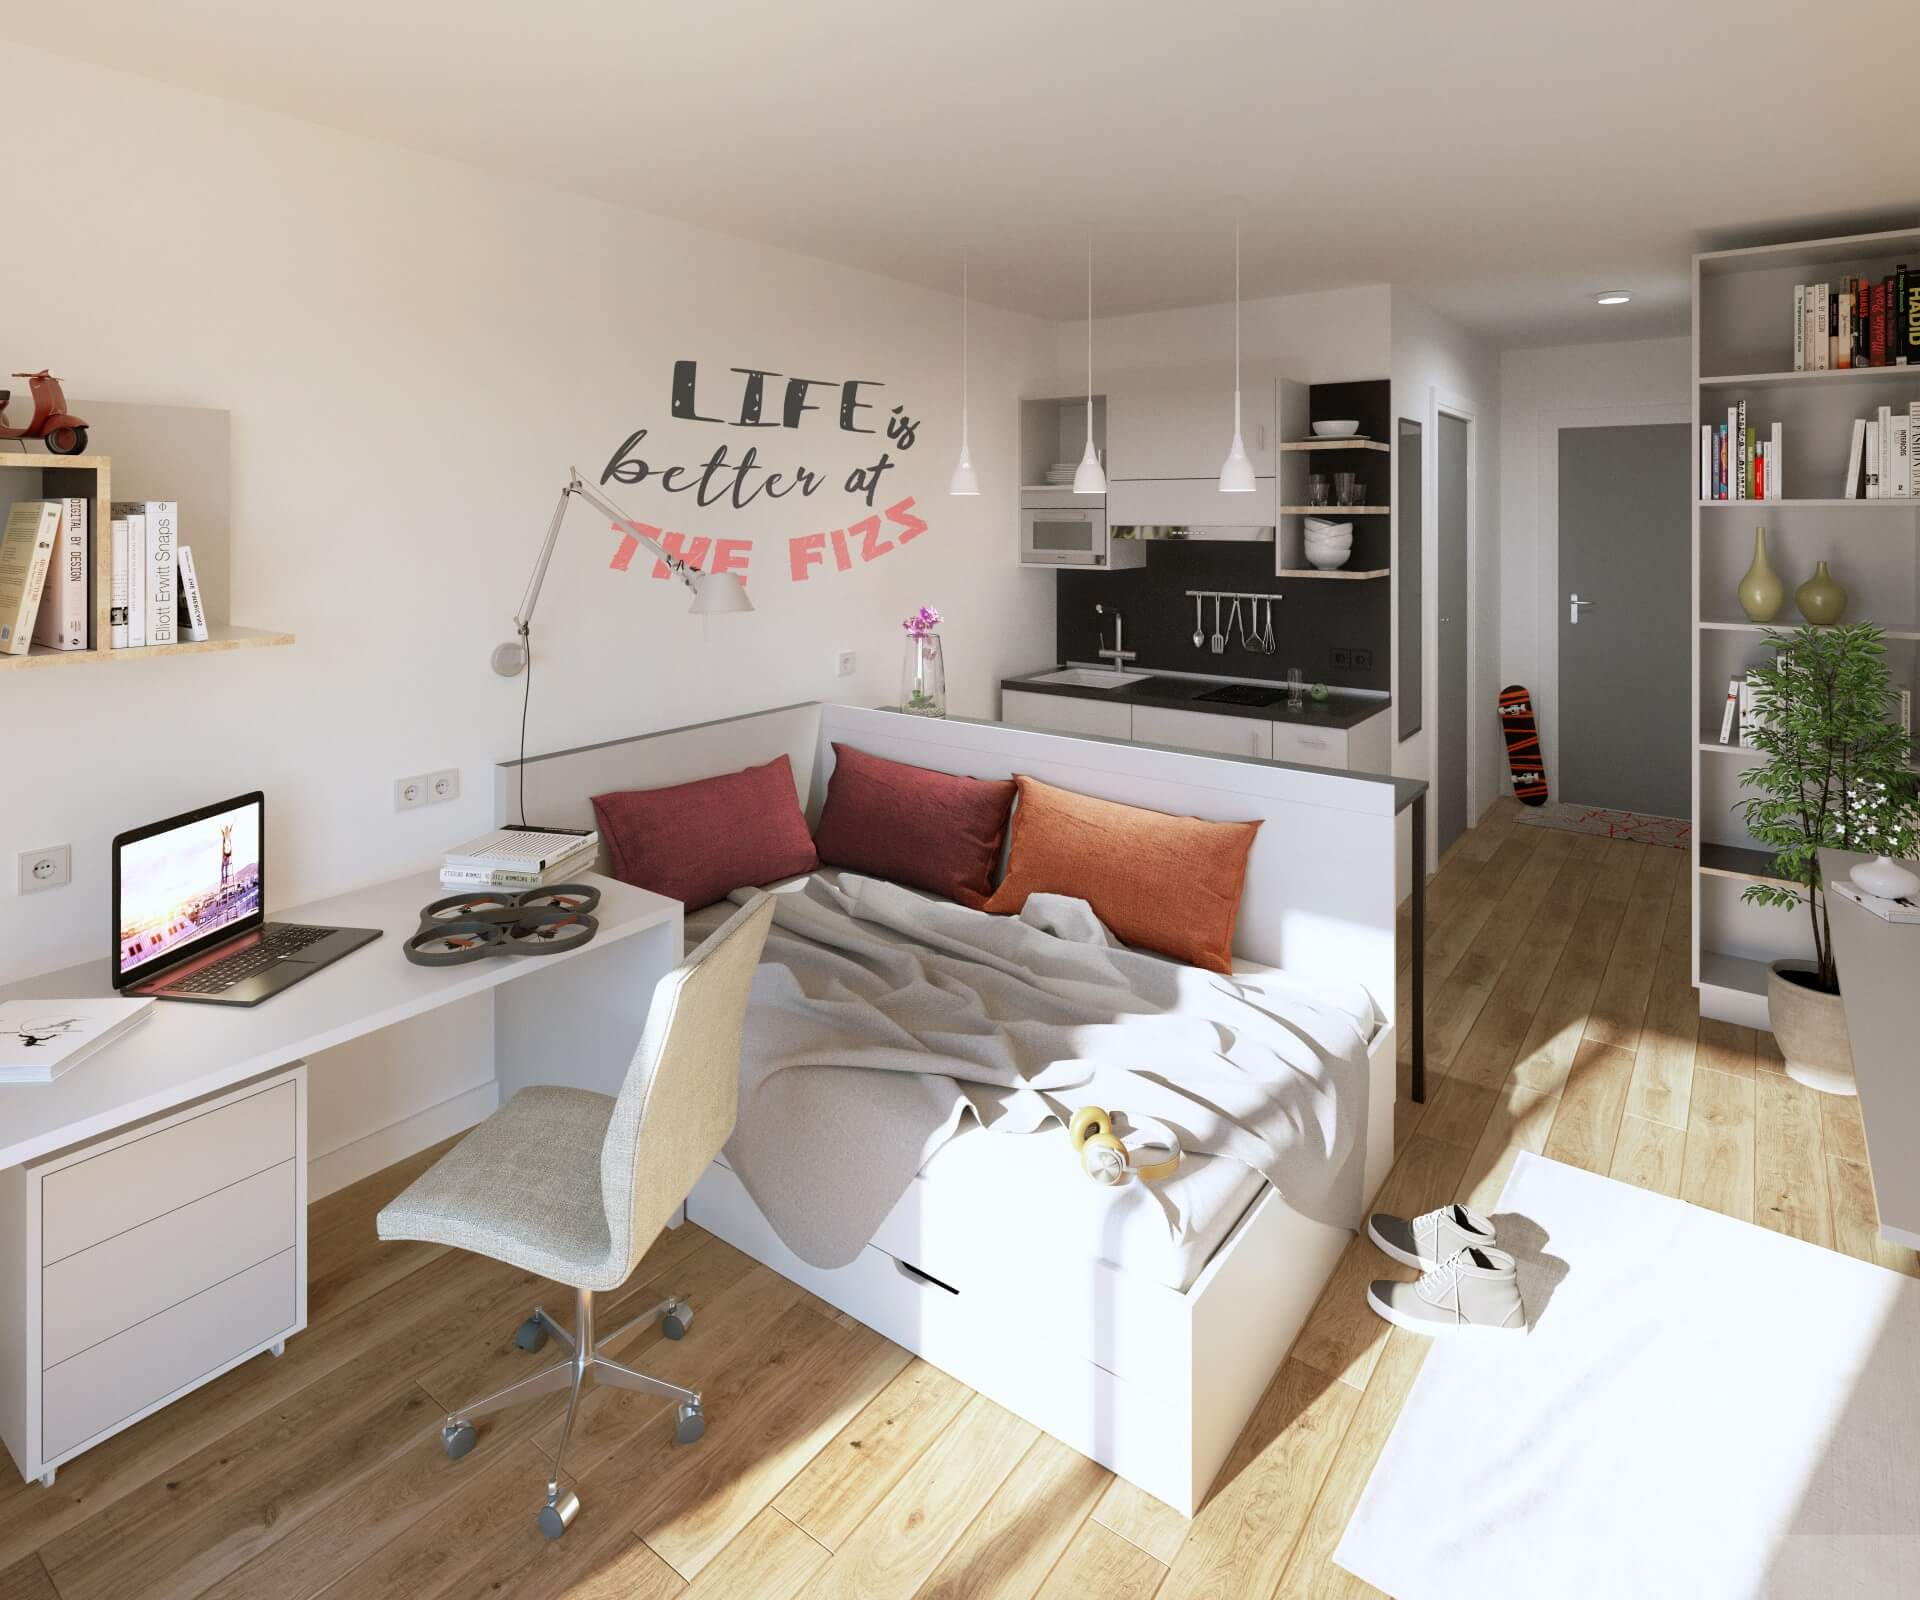 THE FIZZ Vienna Main Station: Single Studio with private kitchen and bathroom. Your student apartment!